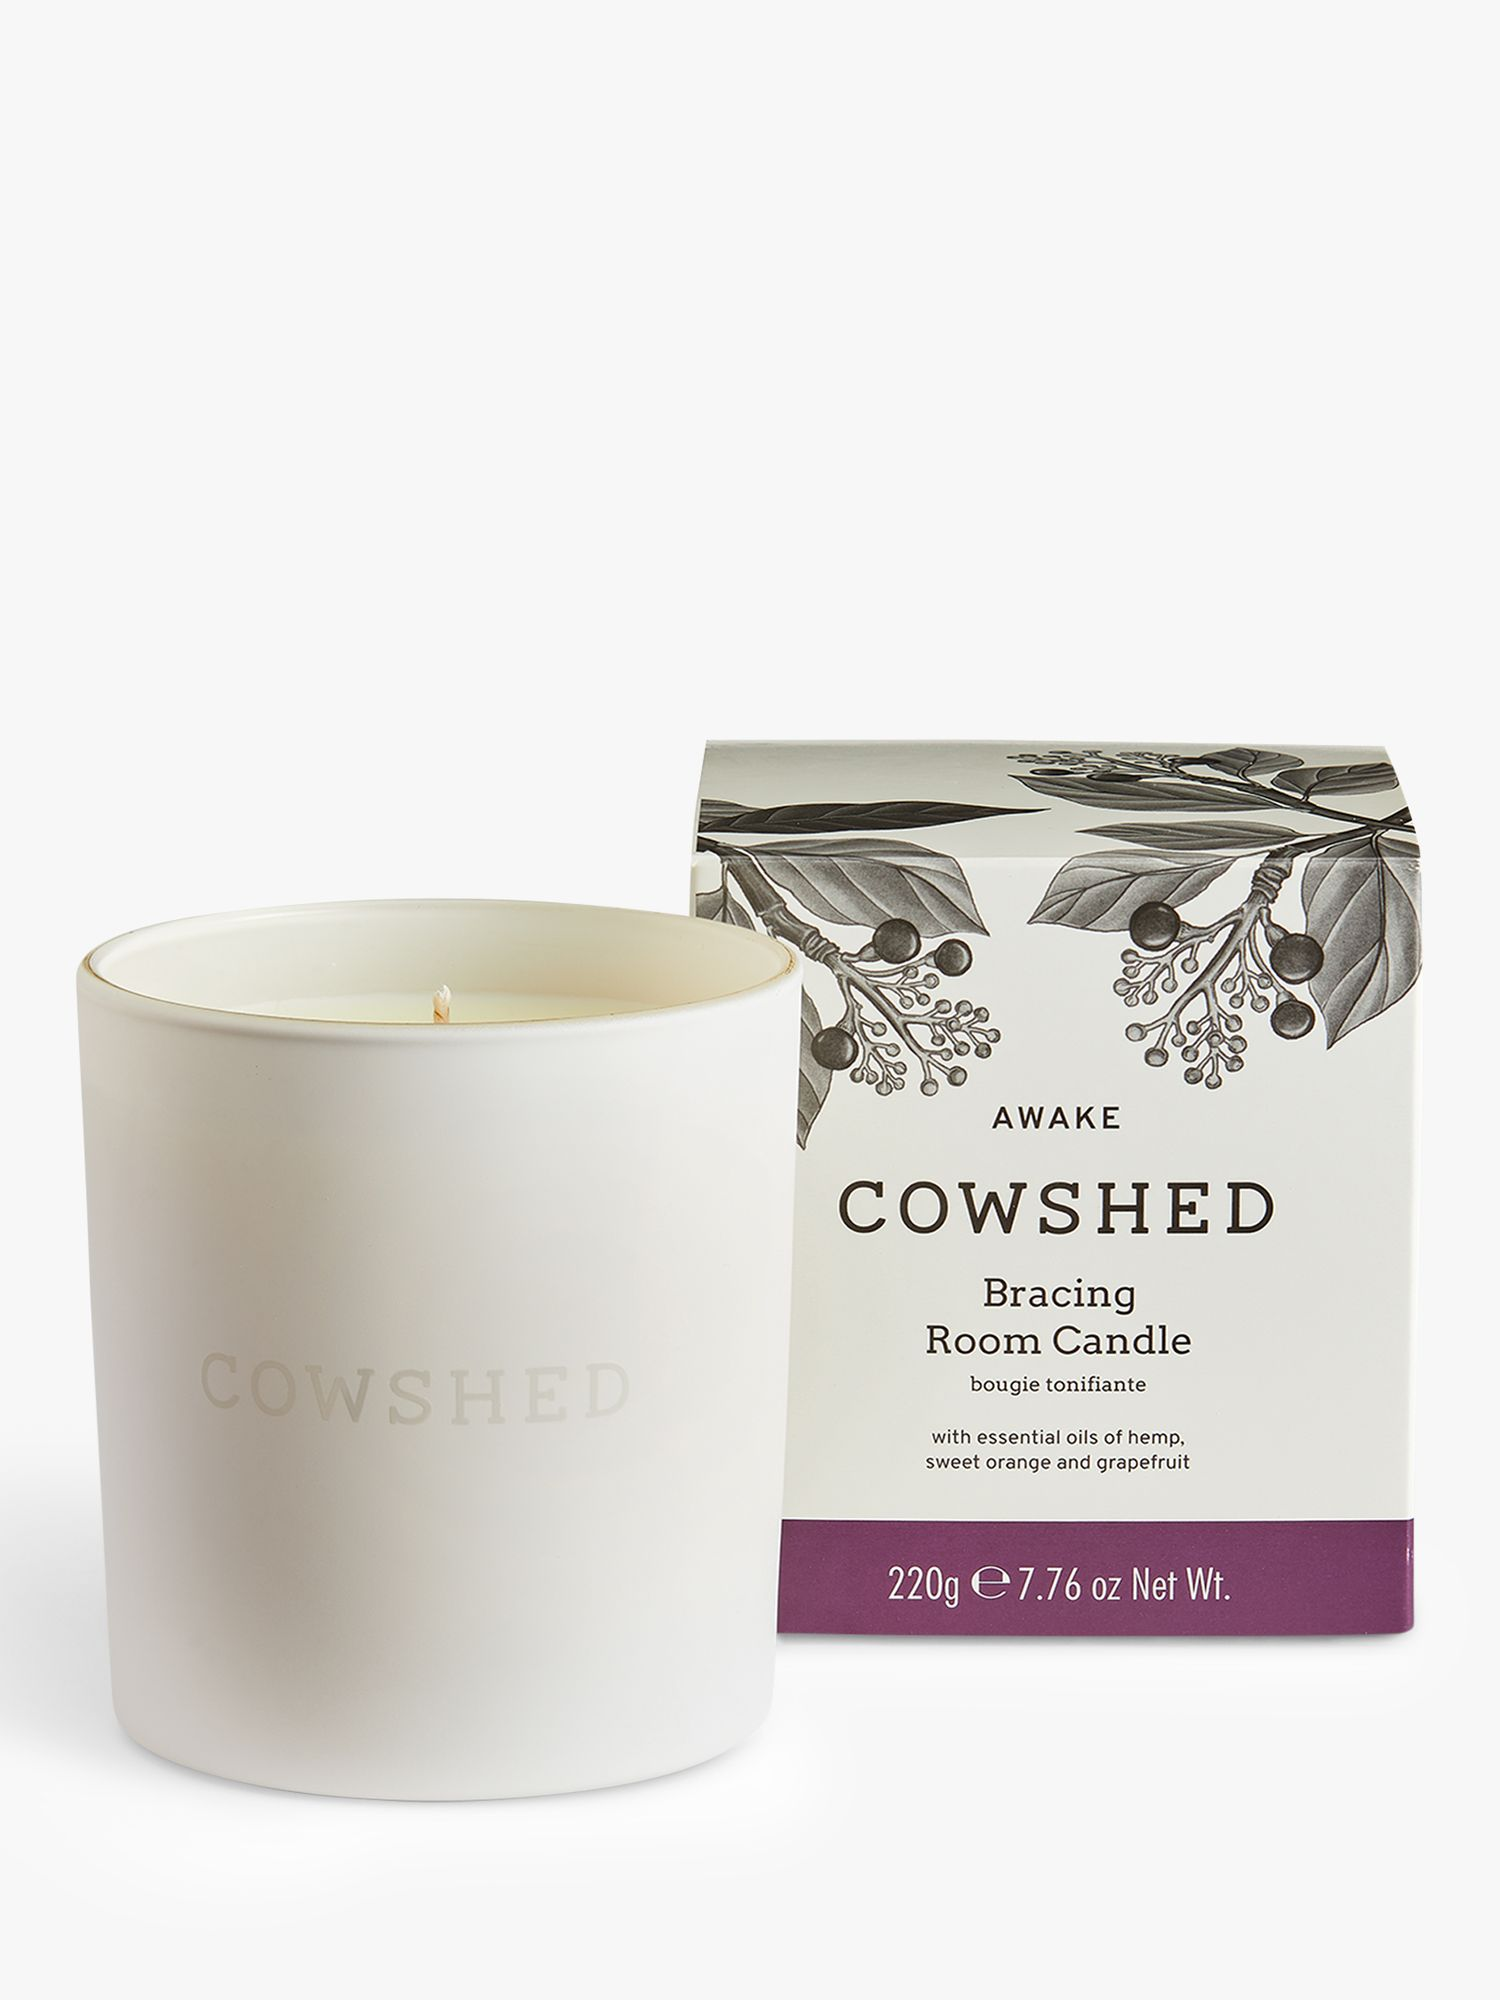 Cowshed Cowshed Awake Bracing Room Candle, 230g